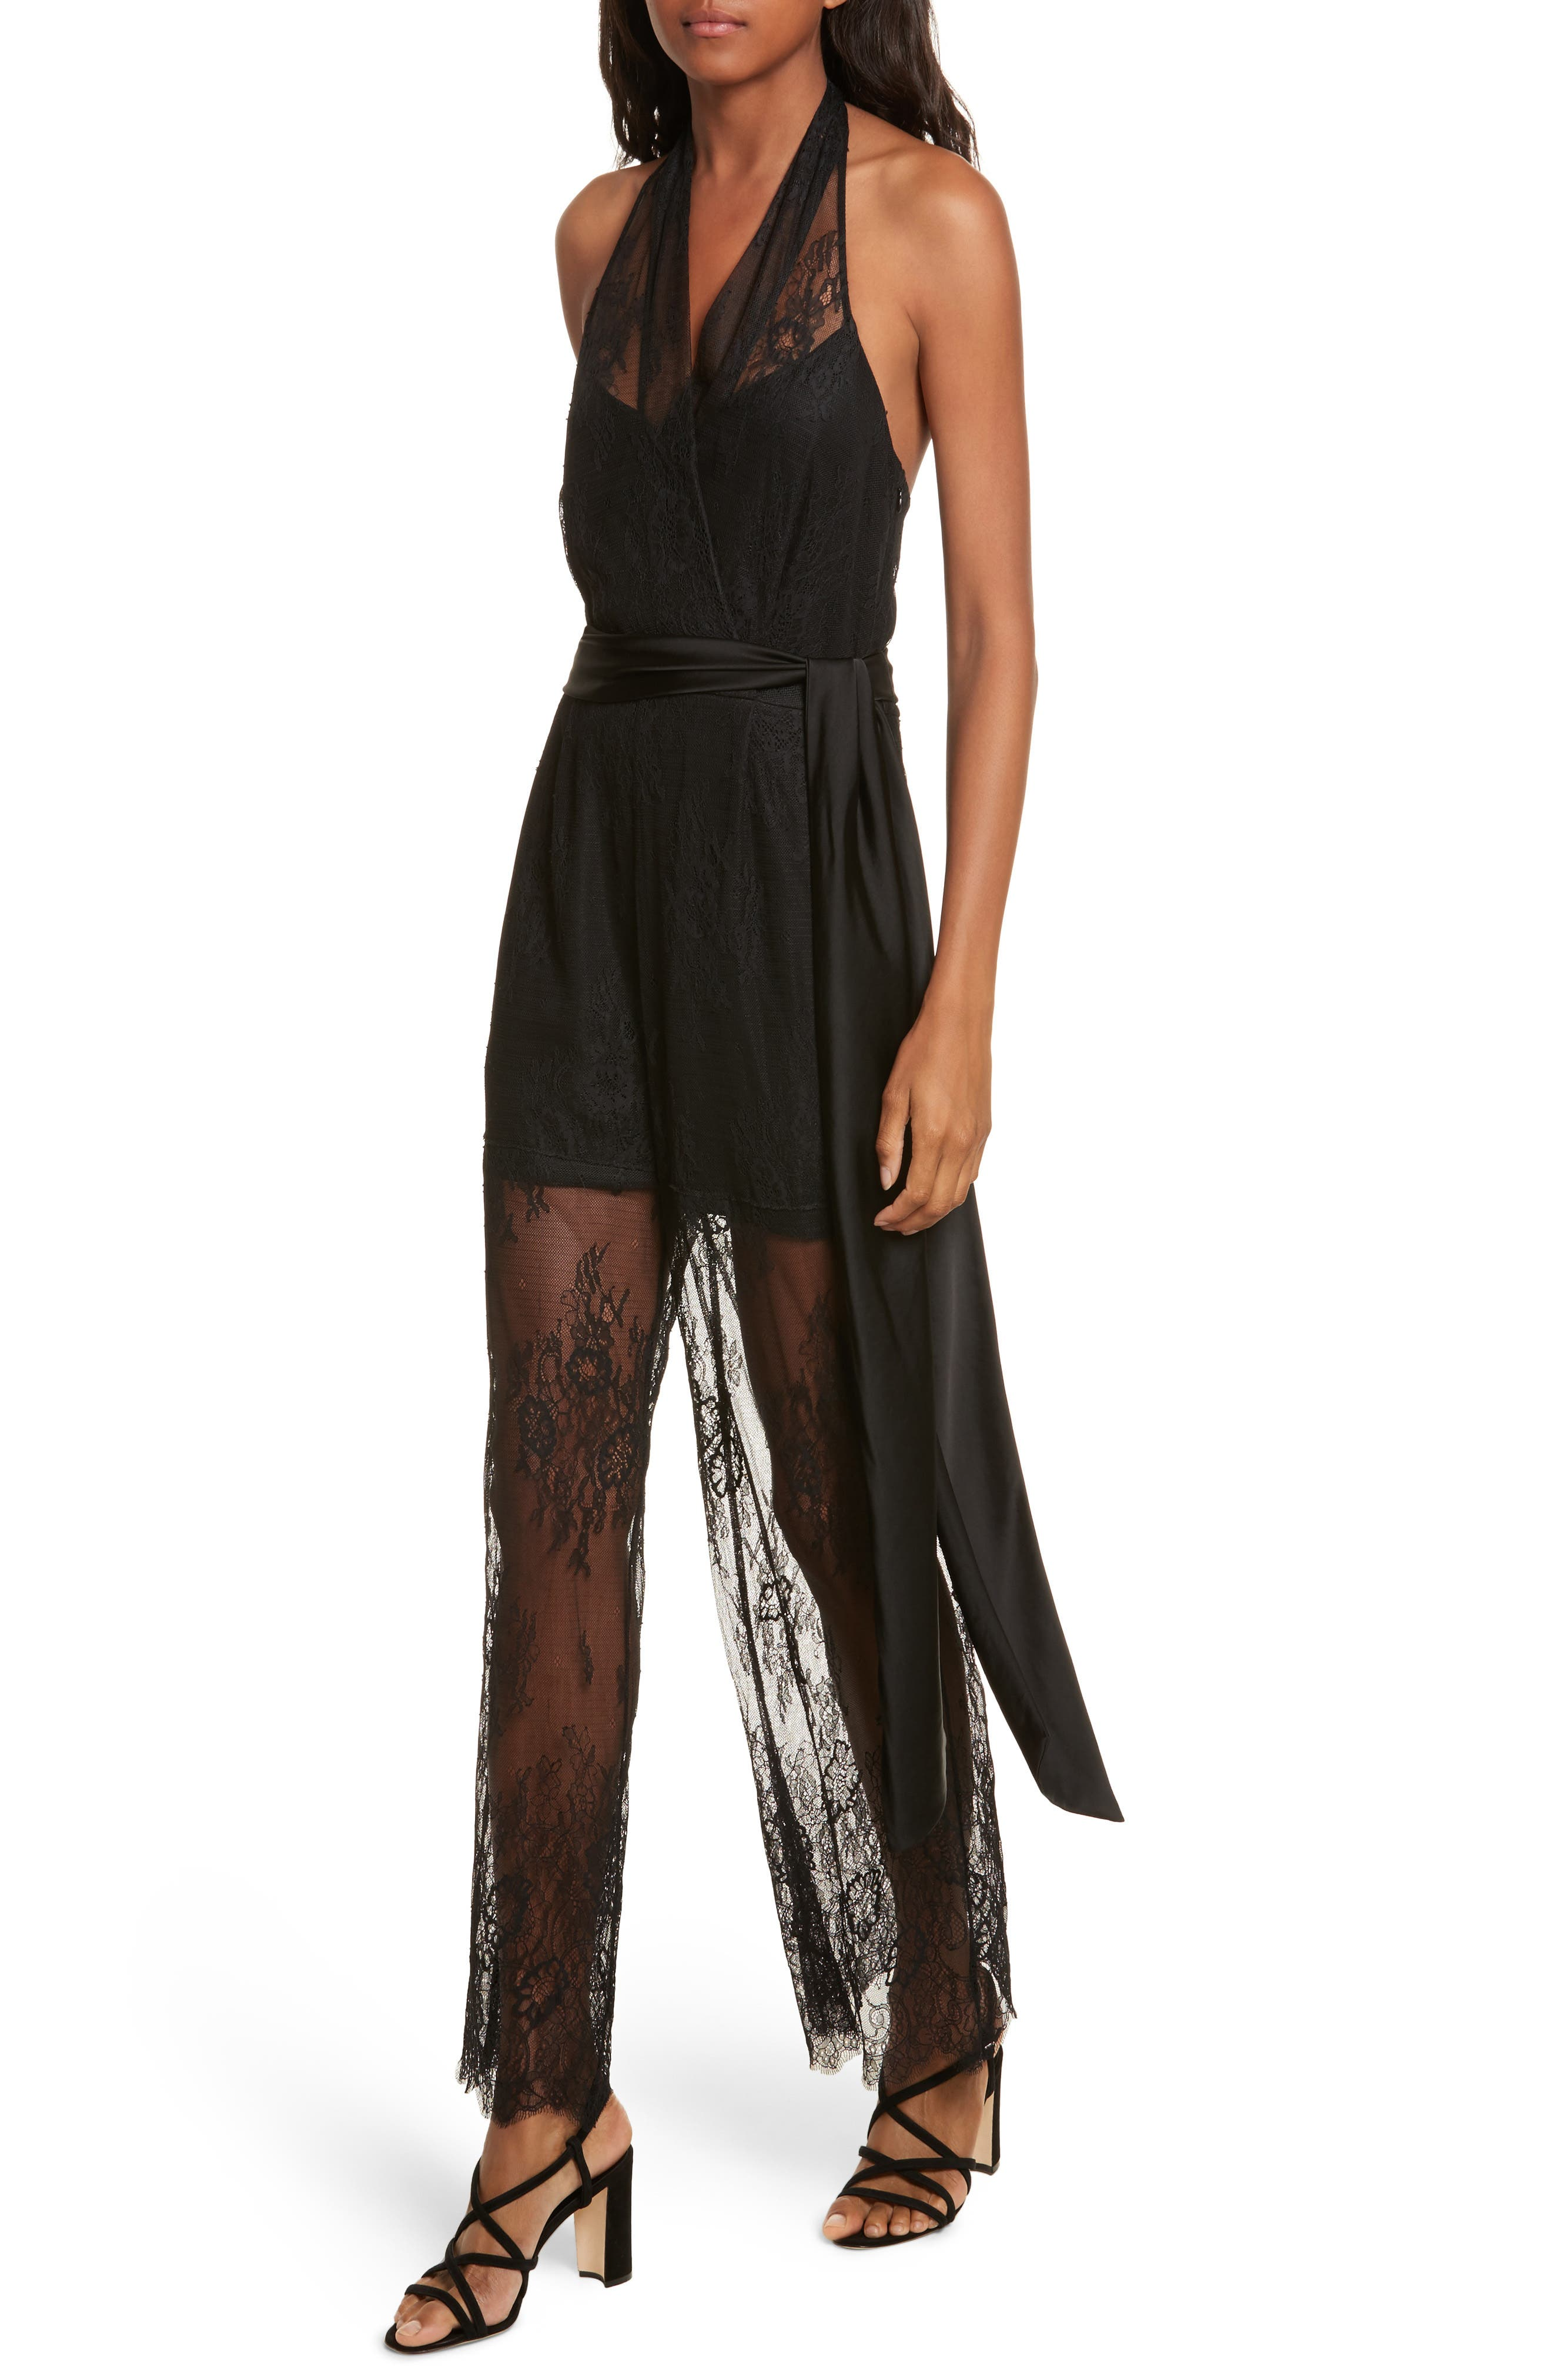 Diane von Furstenberg Halter Neck Lace Jumpsuit,                             Alternate thumbnail 4, color,                             001